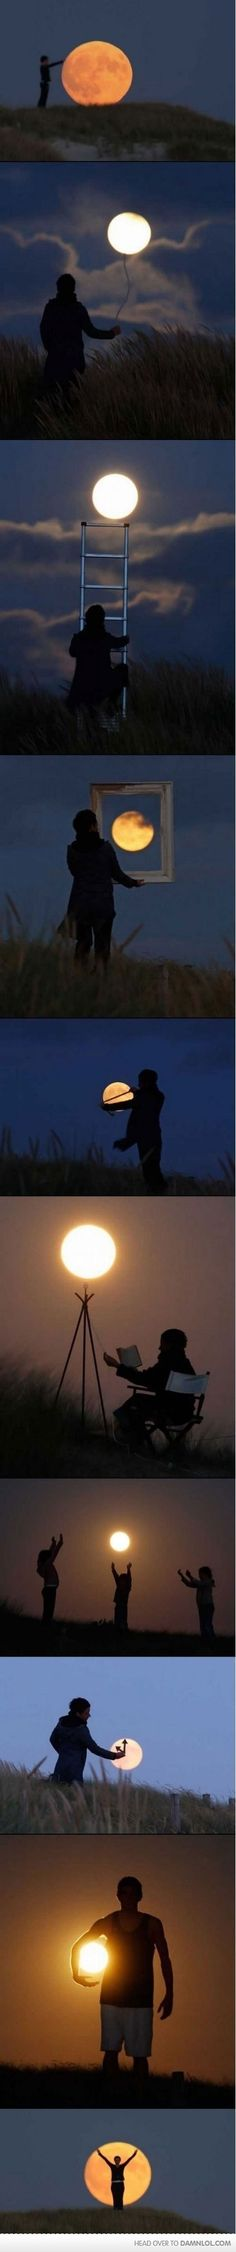 pictures with the moon. totally cool.